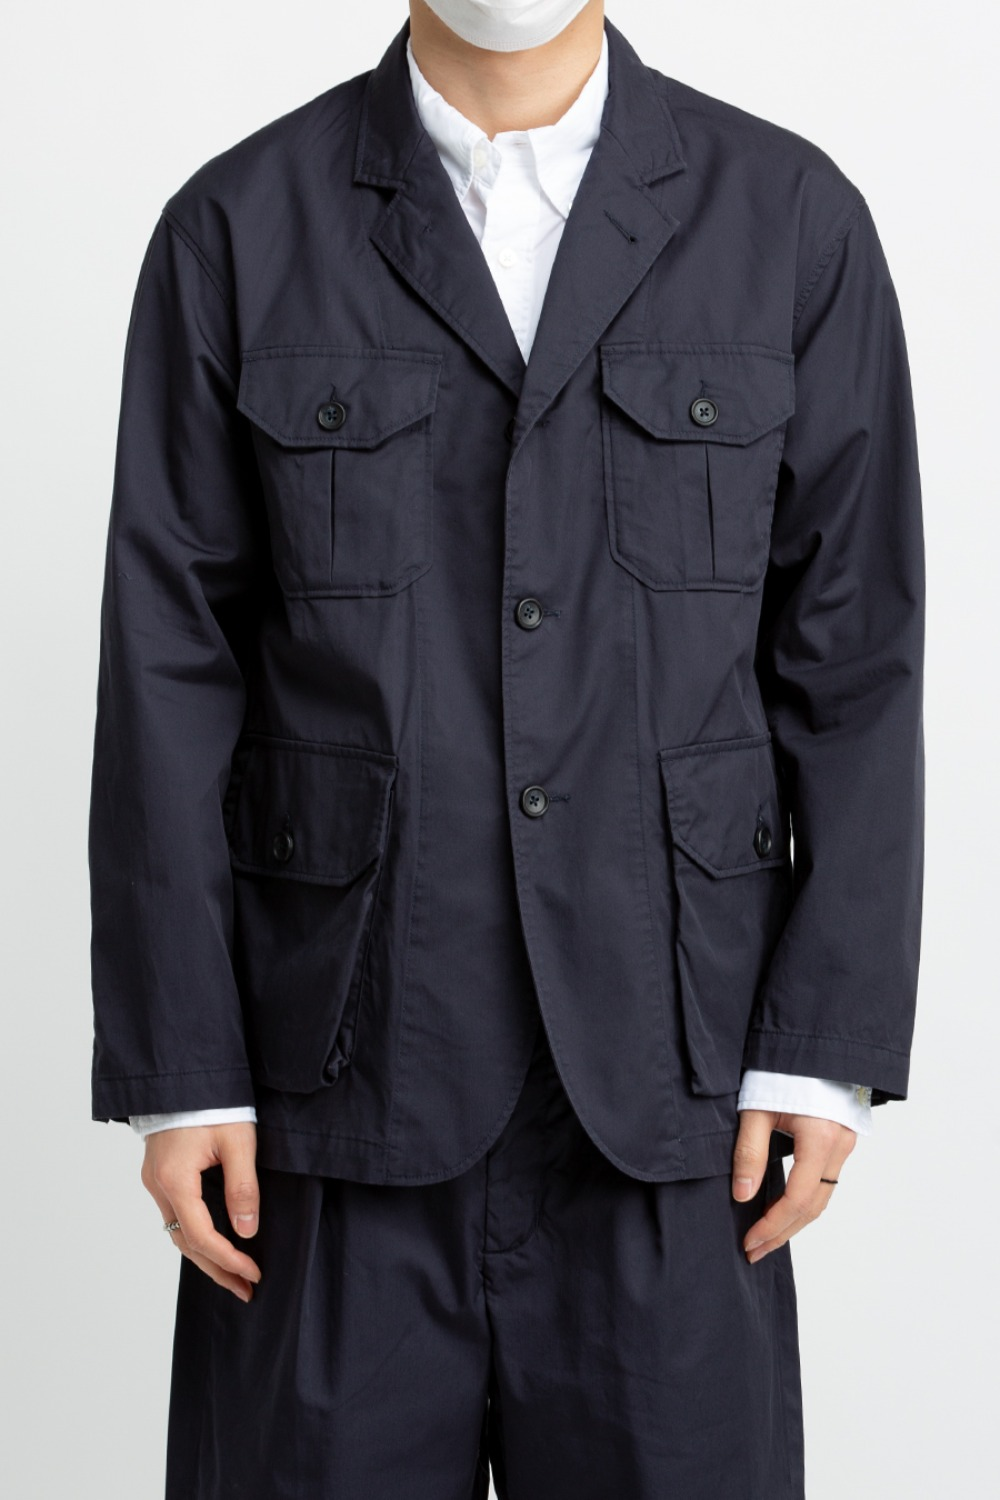 FOLK JACKET HIGH COUNT TWILL DARK NAVY